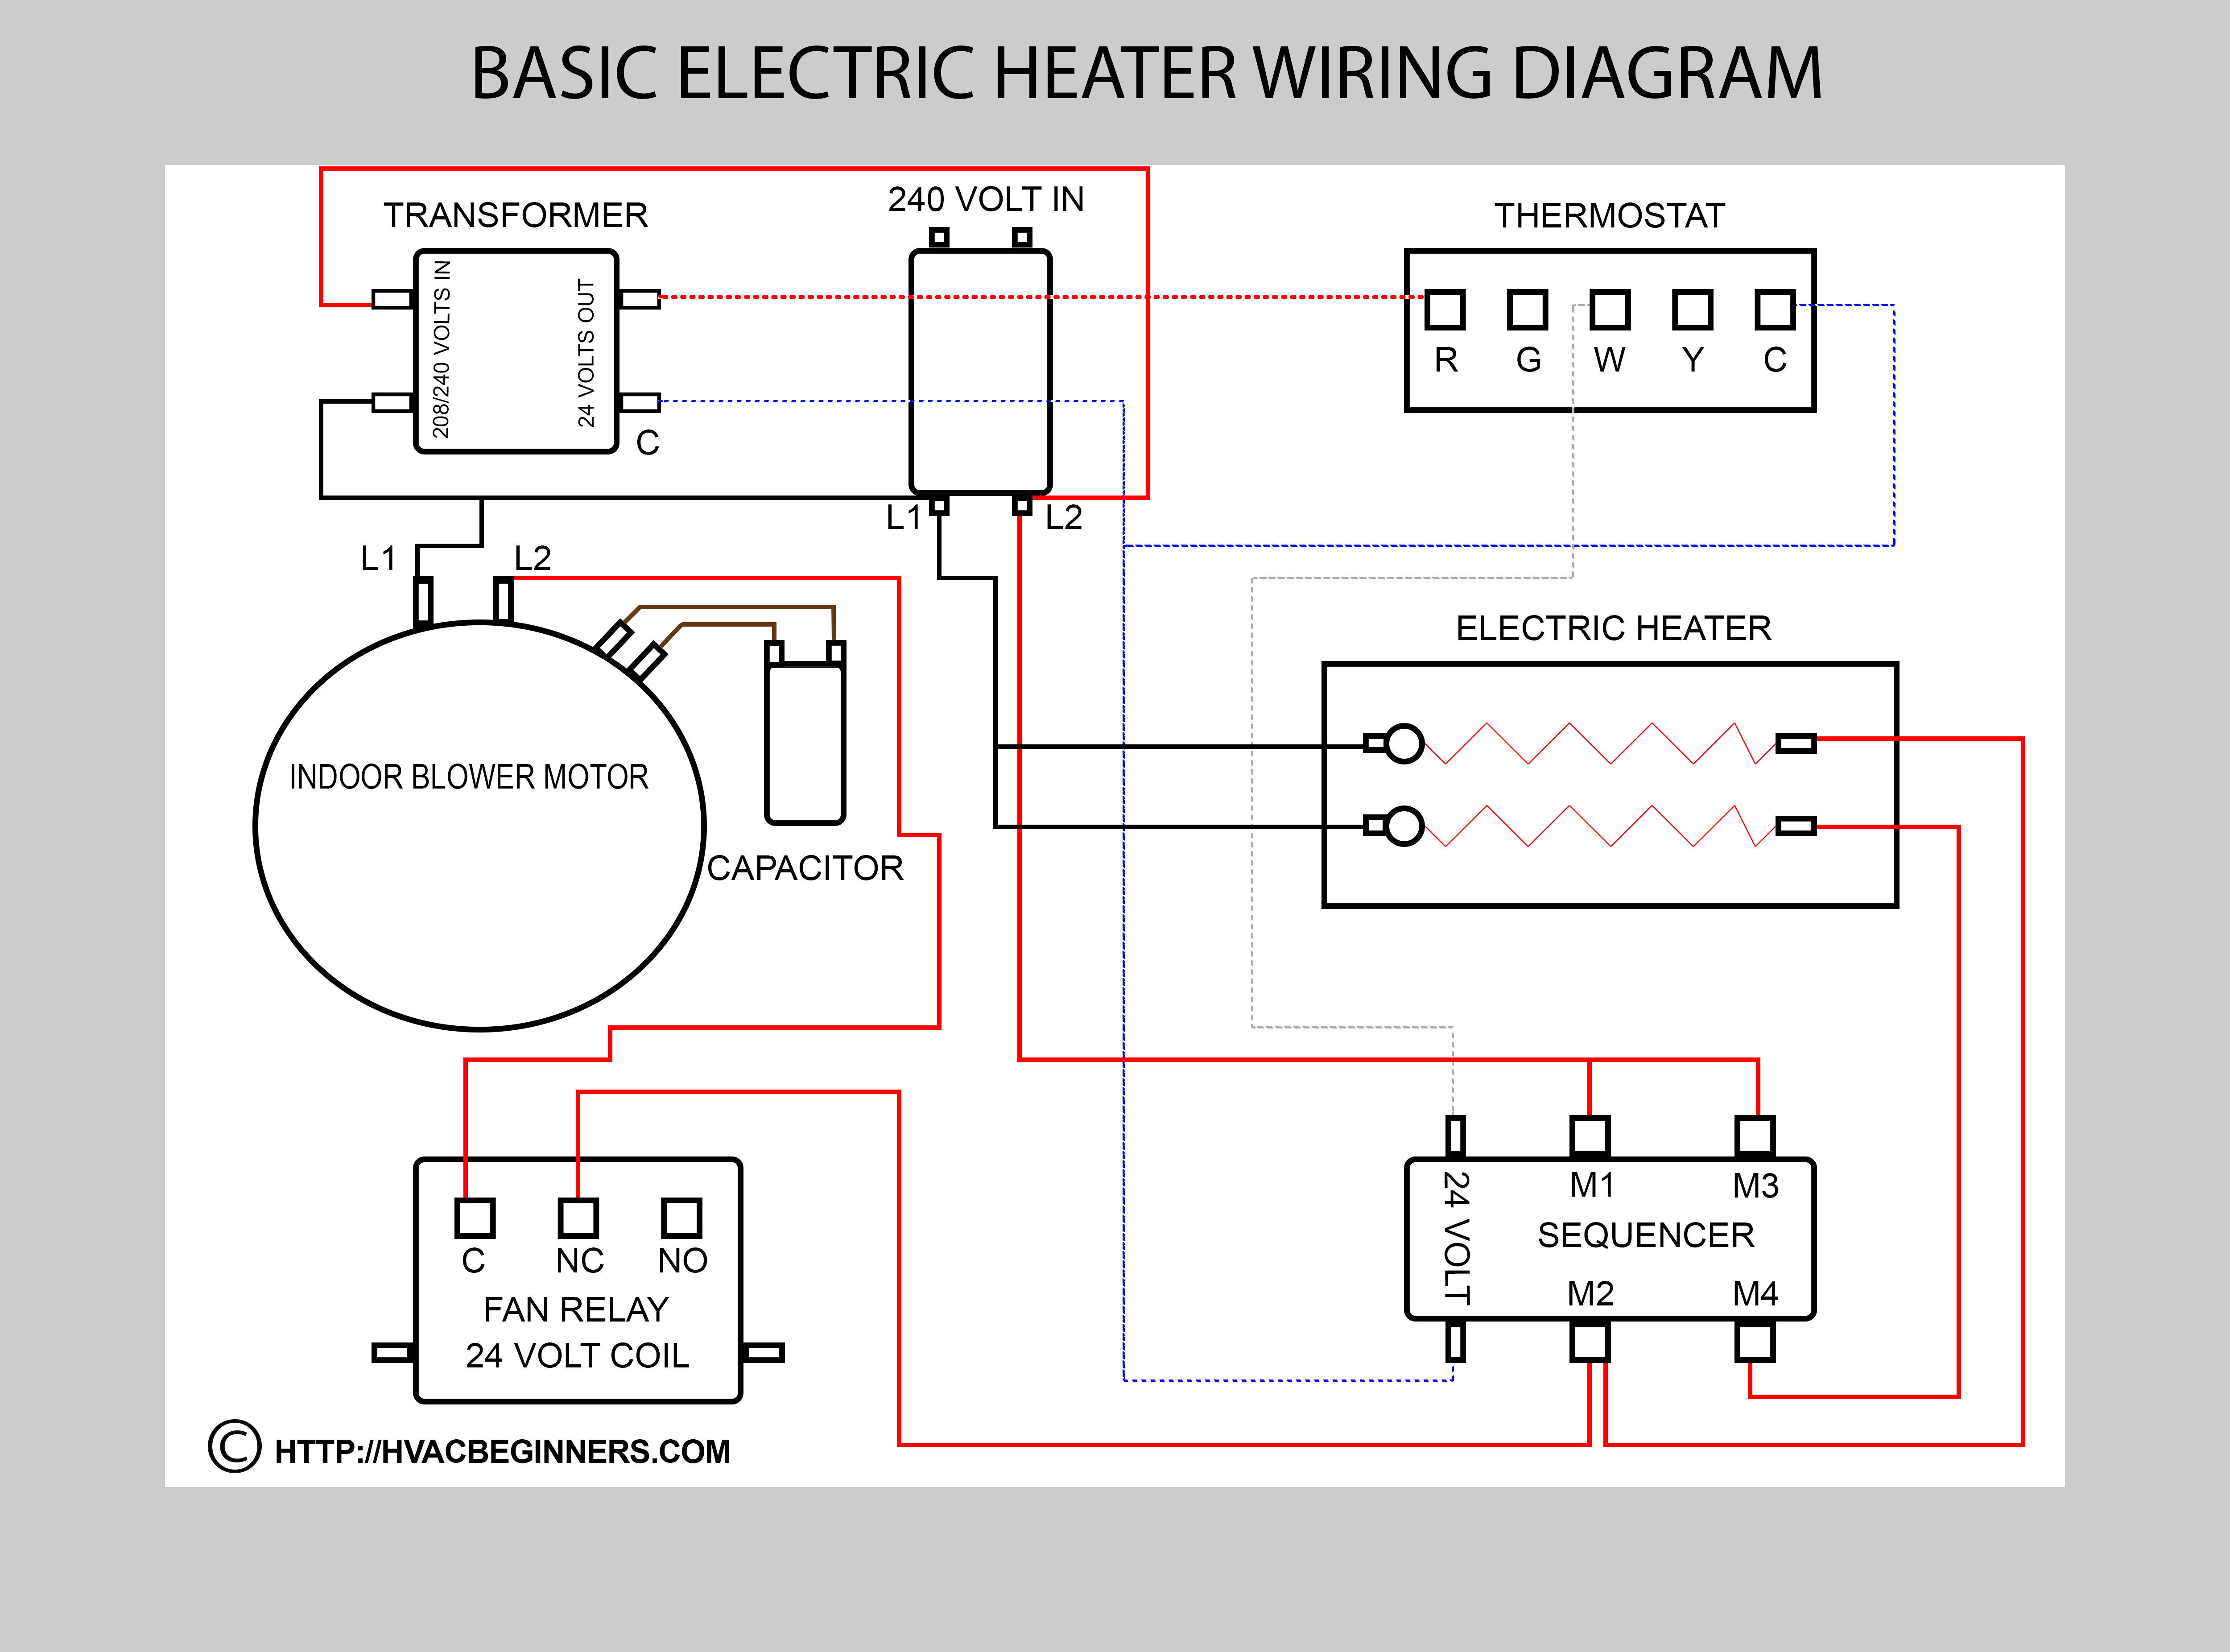 Ac Air Handler Fan Relay Wiring Diagram | Wiring Diagram - Air Handler Fan Relay Wiring Diagram